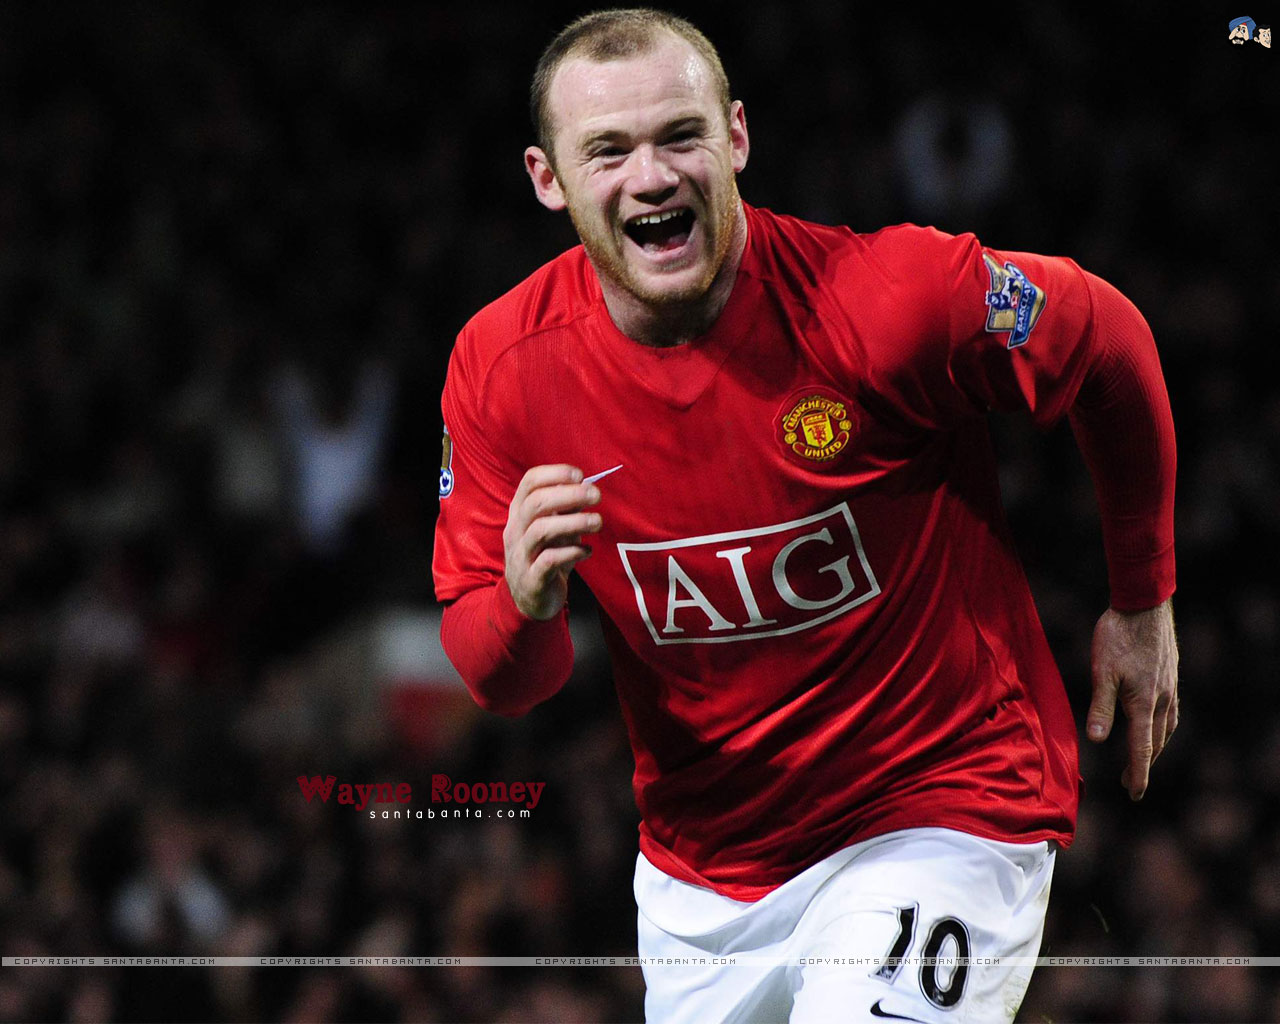 Wayne Rooney Football Wayne Rooney Great Footballer Profile Wyane Pictures Images Top